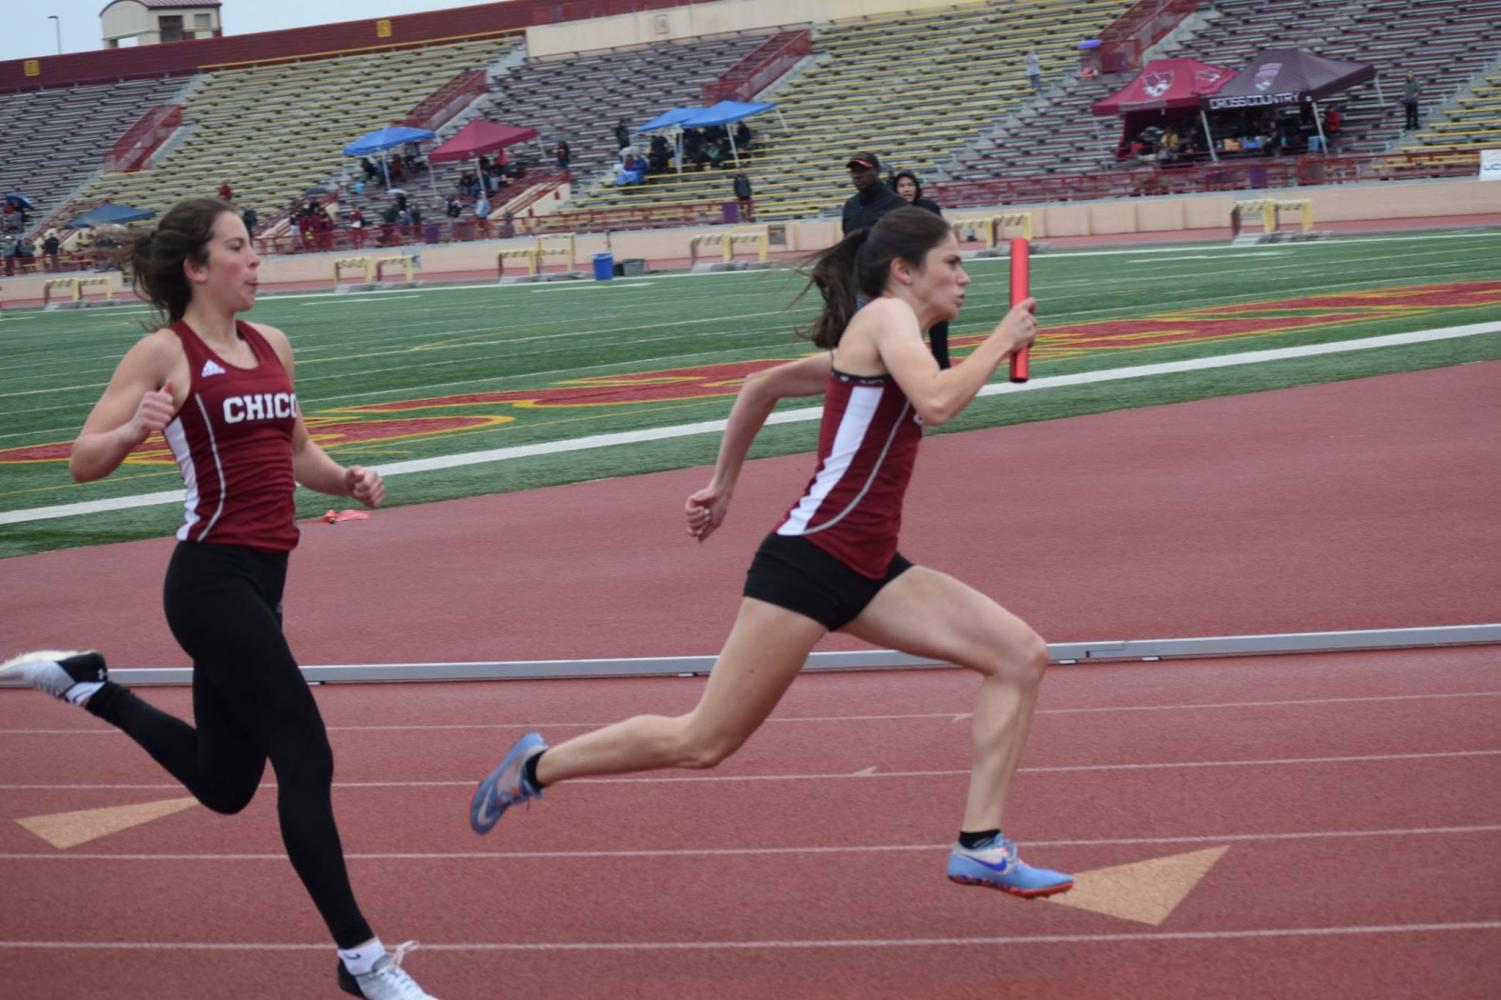 Isabella Moyer passing on the baton to Lyndsey Settle in the invitational track meet Sunday. Image courtesy of Chico State Sports Information.